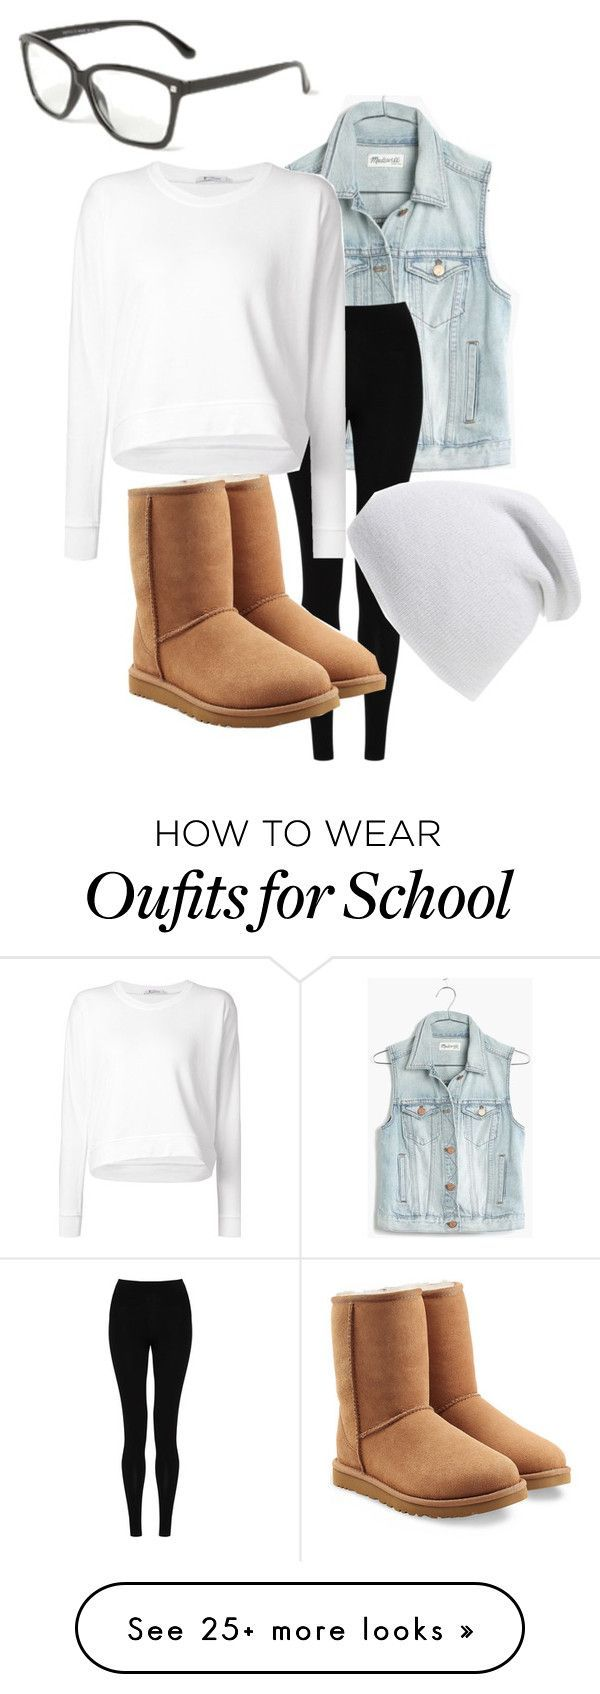 """""""School mouse"""" by galaxygirl11 on Polyvore featuring Madewell, M&S Collection, Alexander Wang, UGG Australia and Phase 3"""